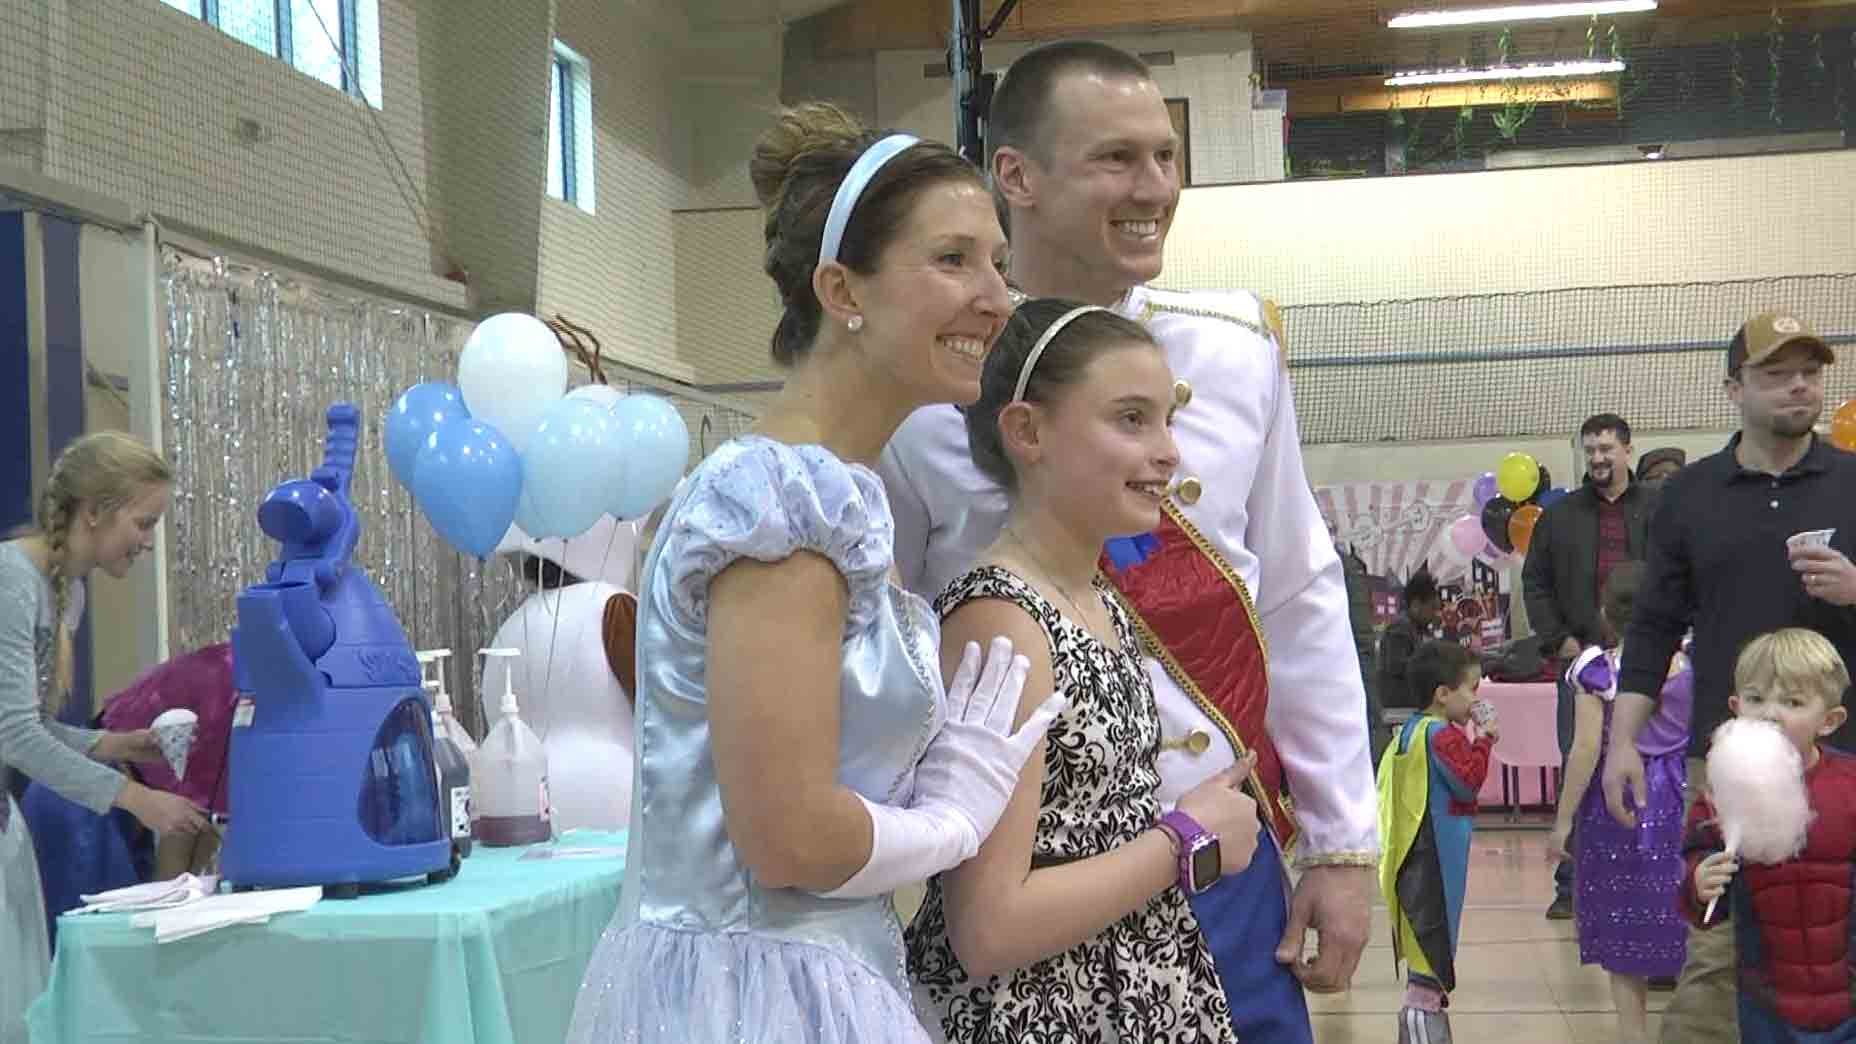 Cinderella and Prince Charming took photos with children at the Super Magical Ball.